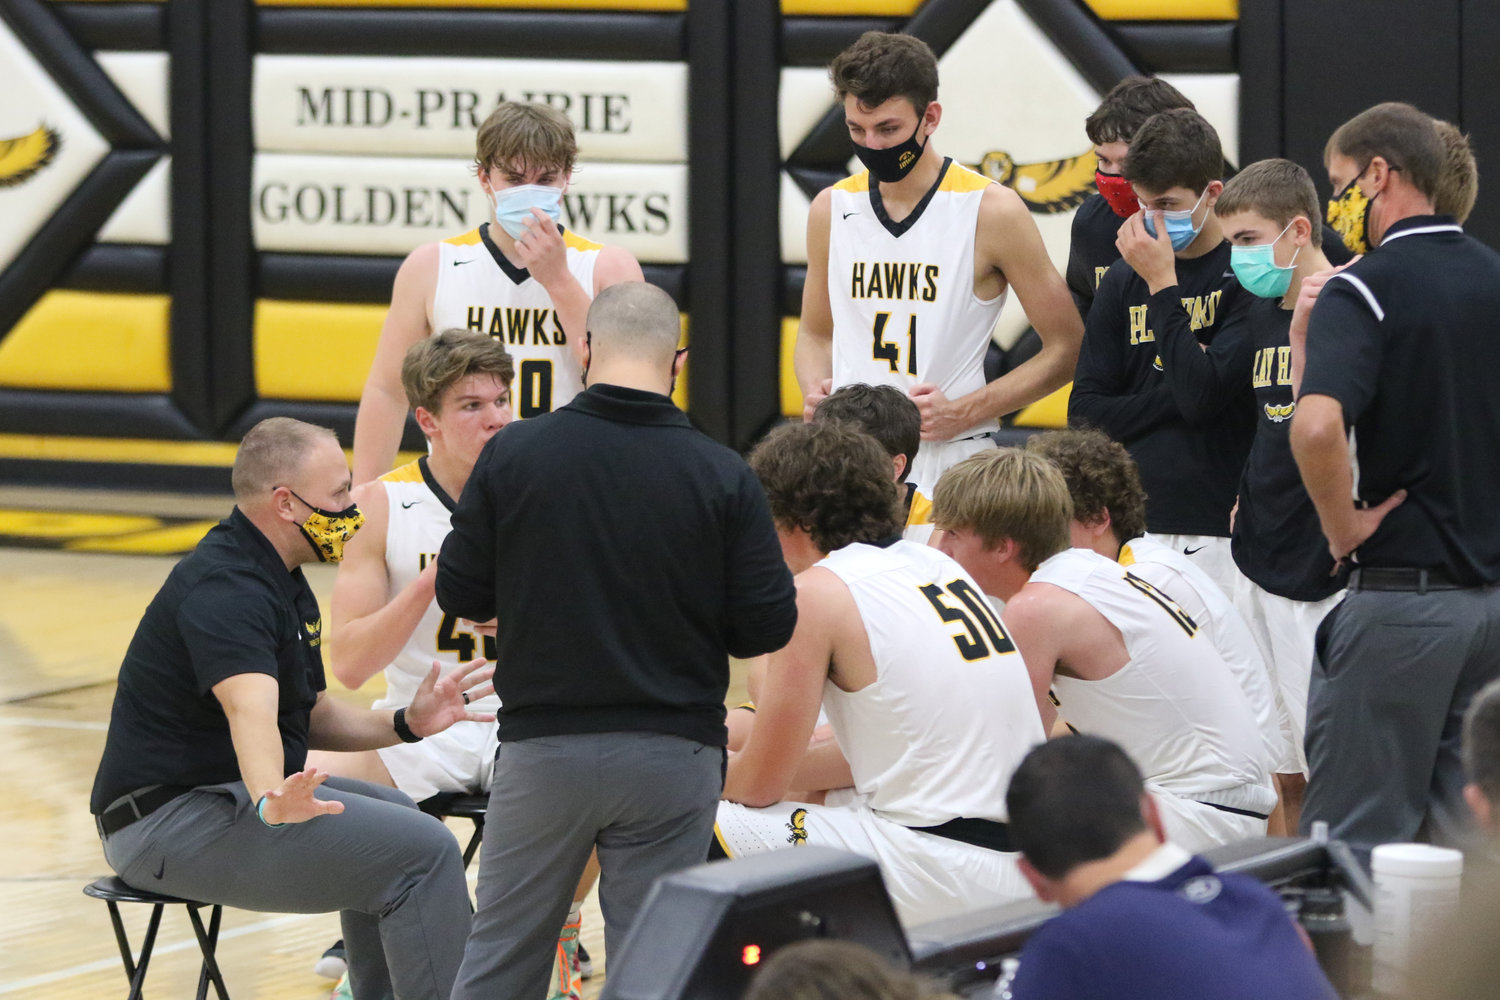 Mid-Prairie coach Daren Lambert (left) addresses his squad after the first quarter of a scrimmage with Mediapolis in Wellman on Saturday, November 21.